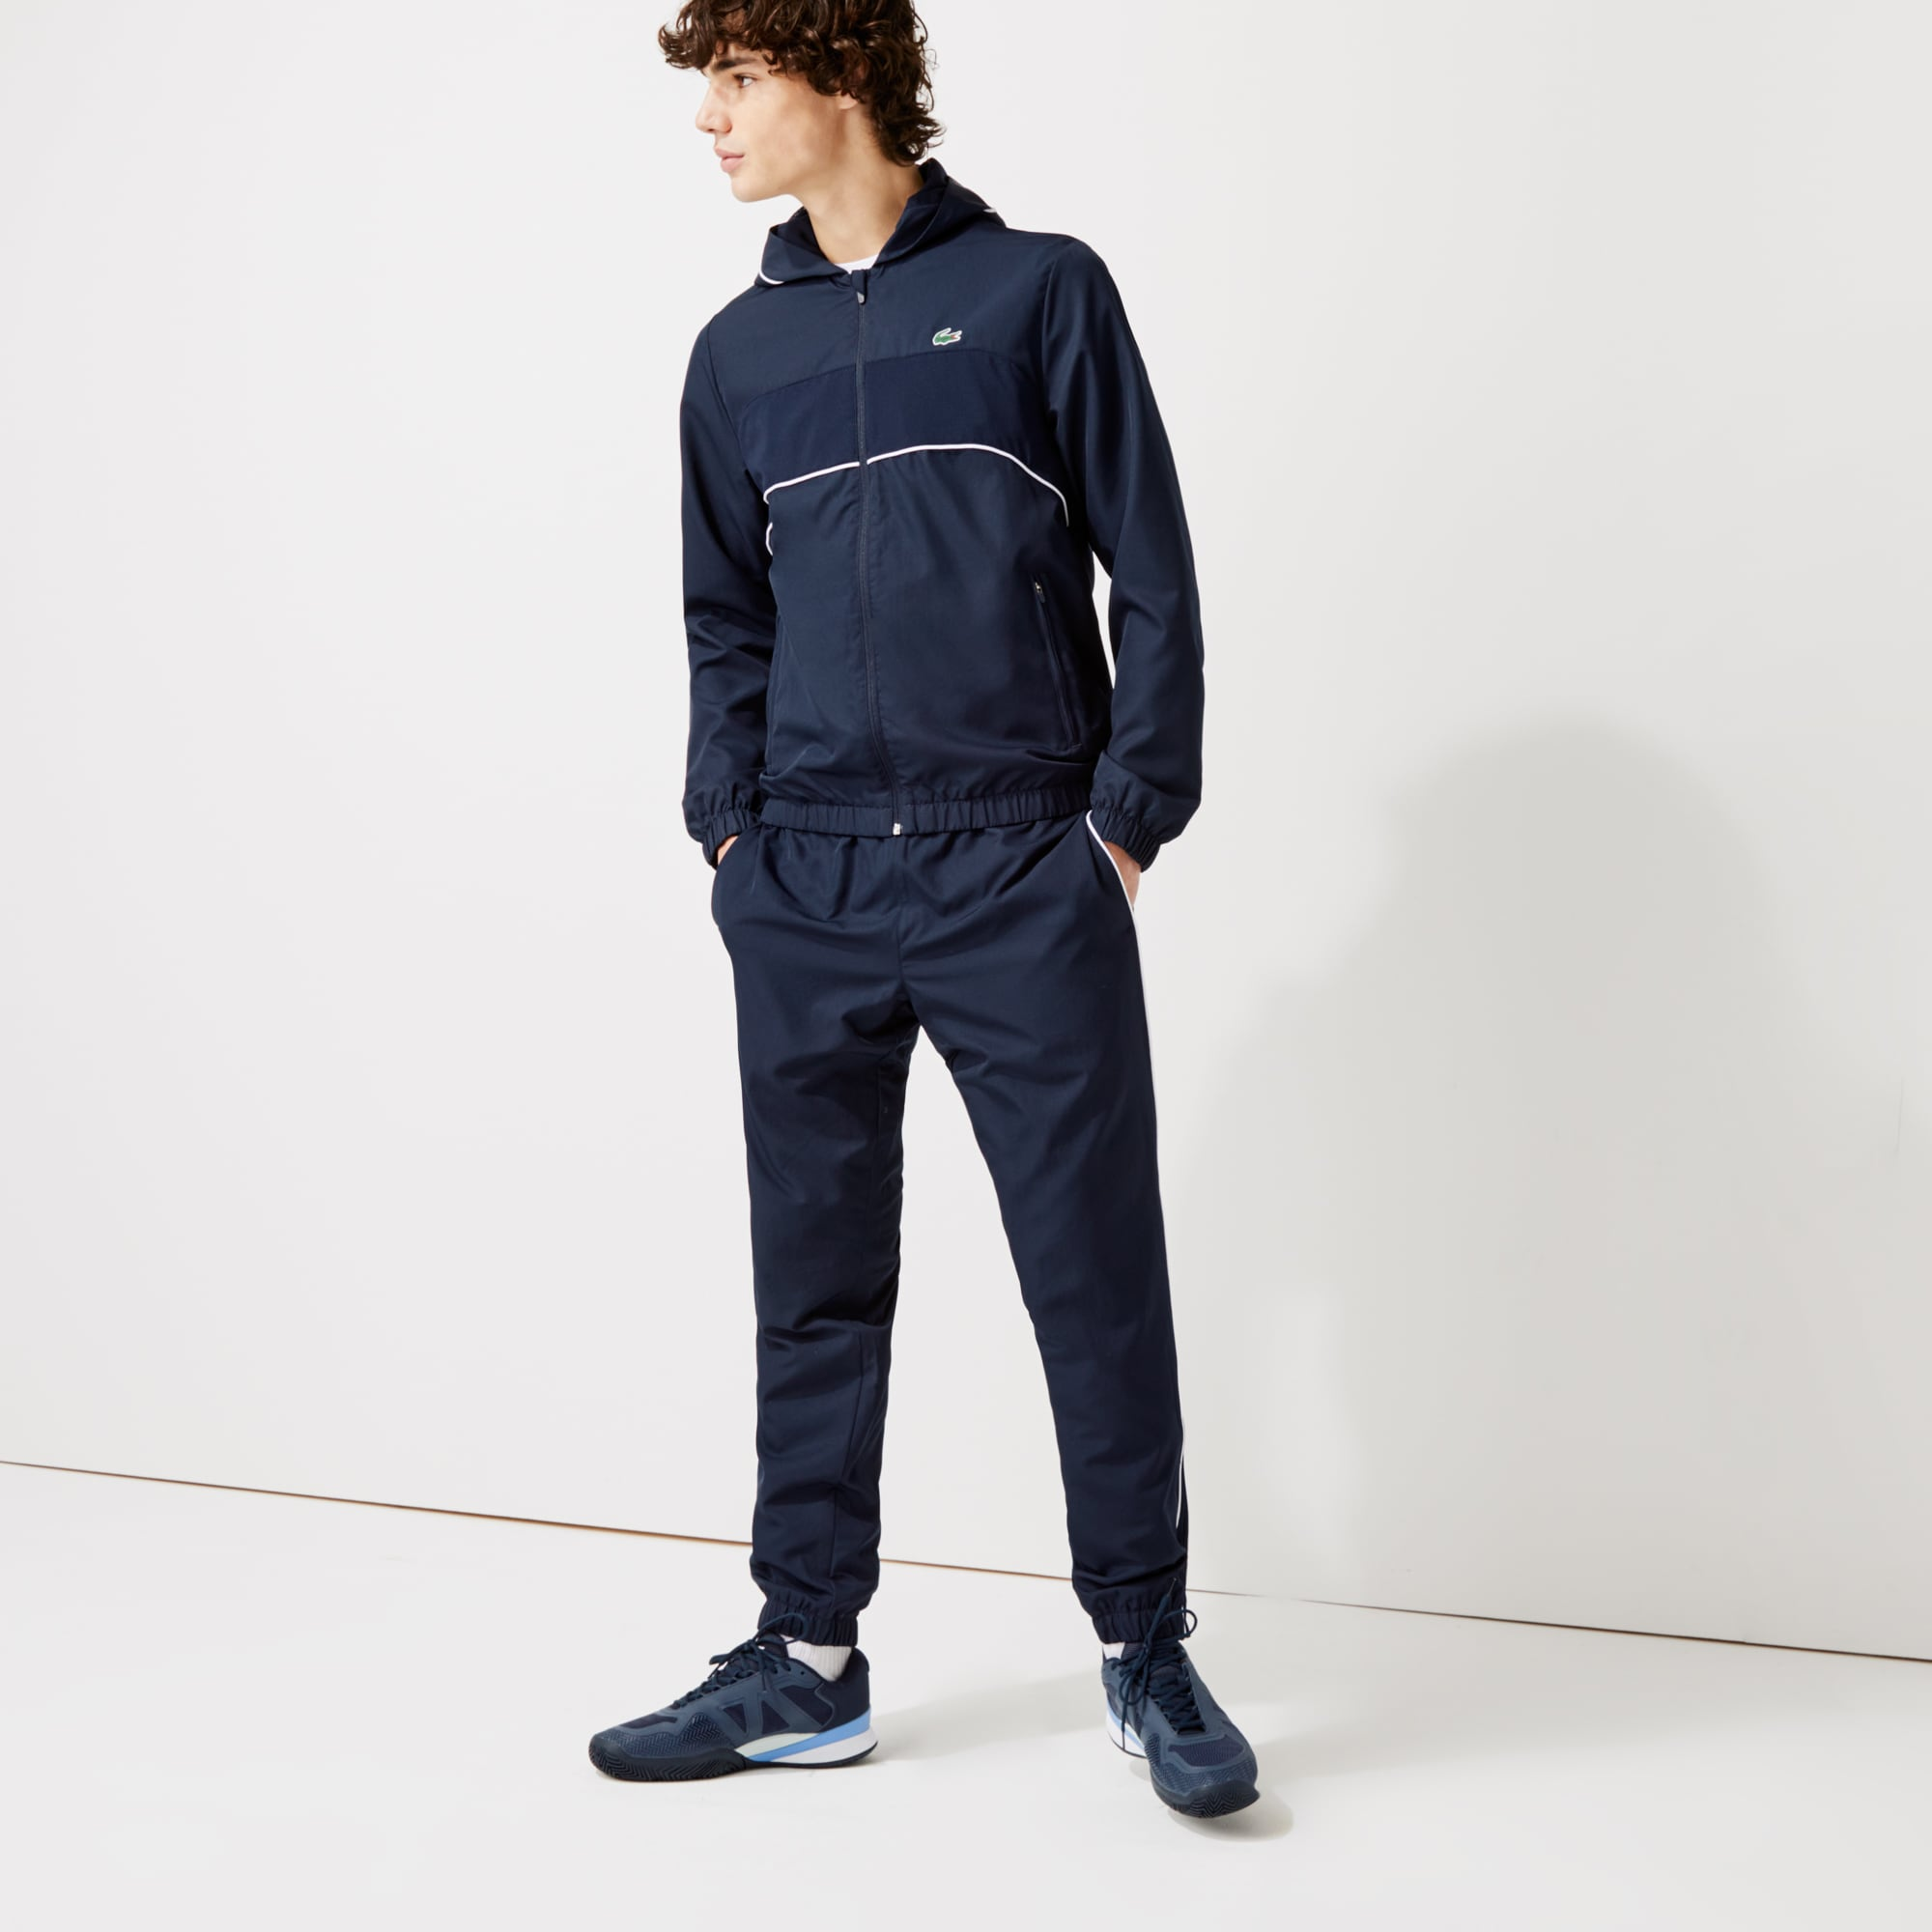 라코스테 Lacoste Men's SPORT Hooded Tennis Tracksuit